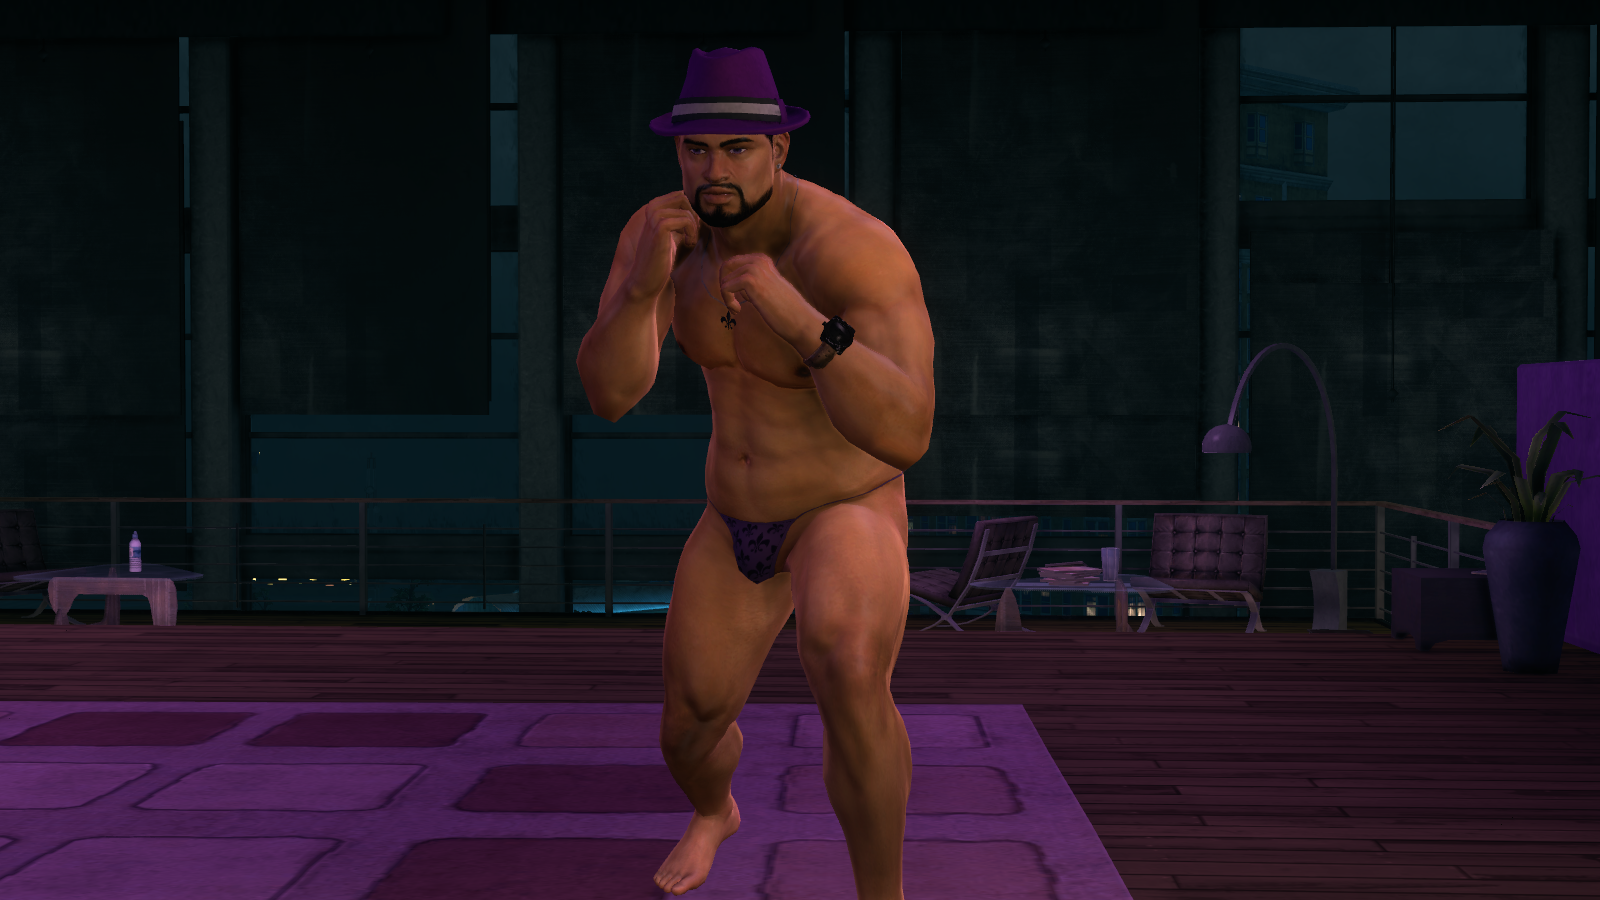 Saints row 3 naked mods naked images